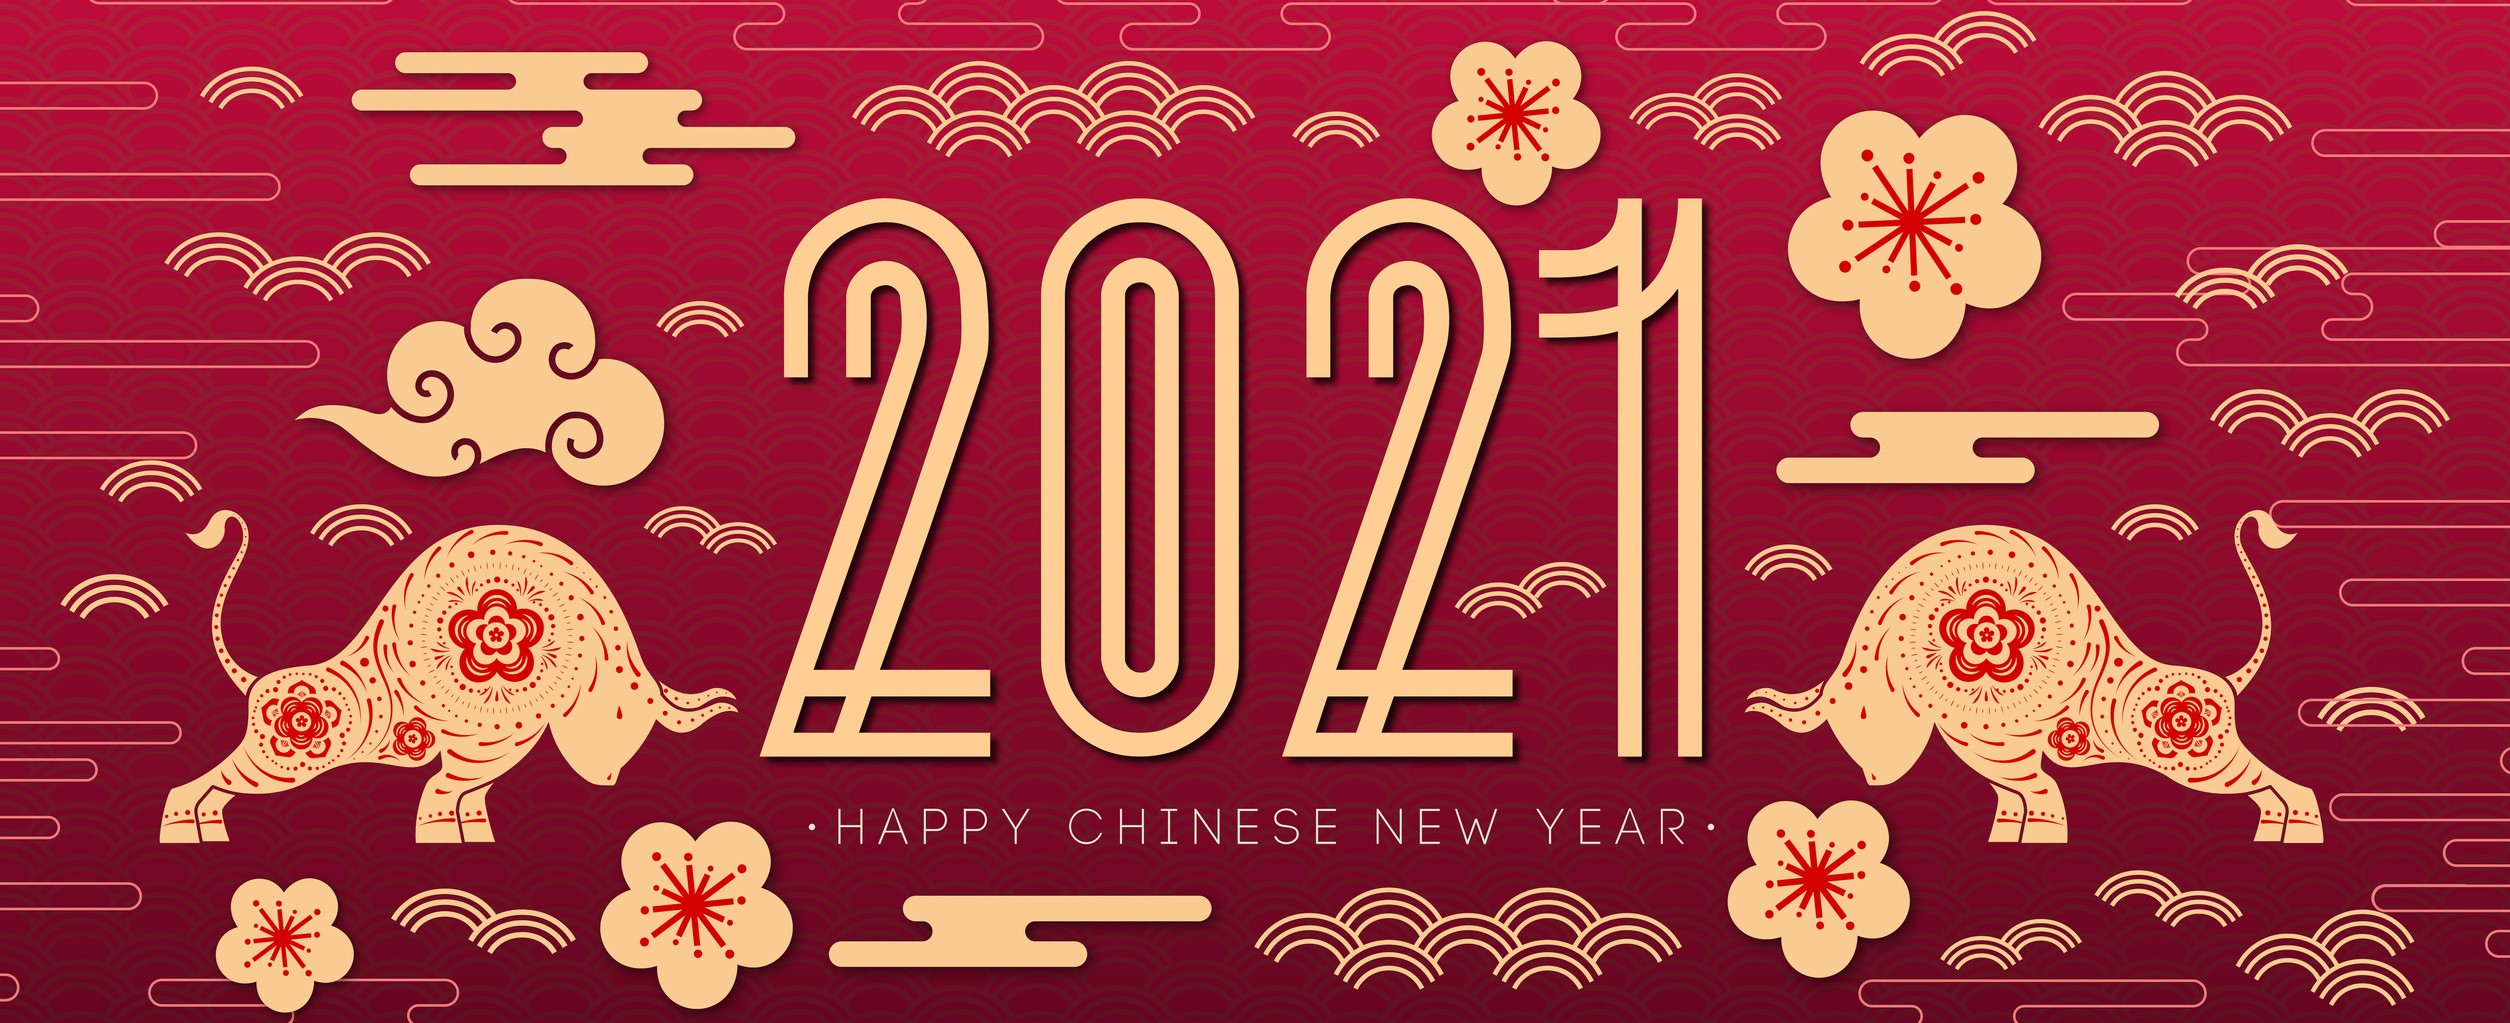 Decorative Gold and Red Bottom Banner Saying 2021 Happy Chinese New Year